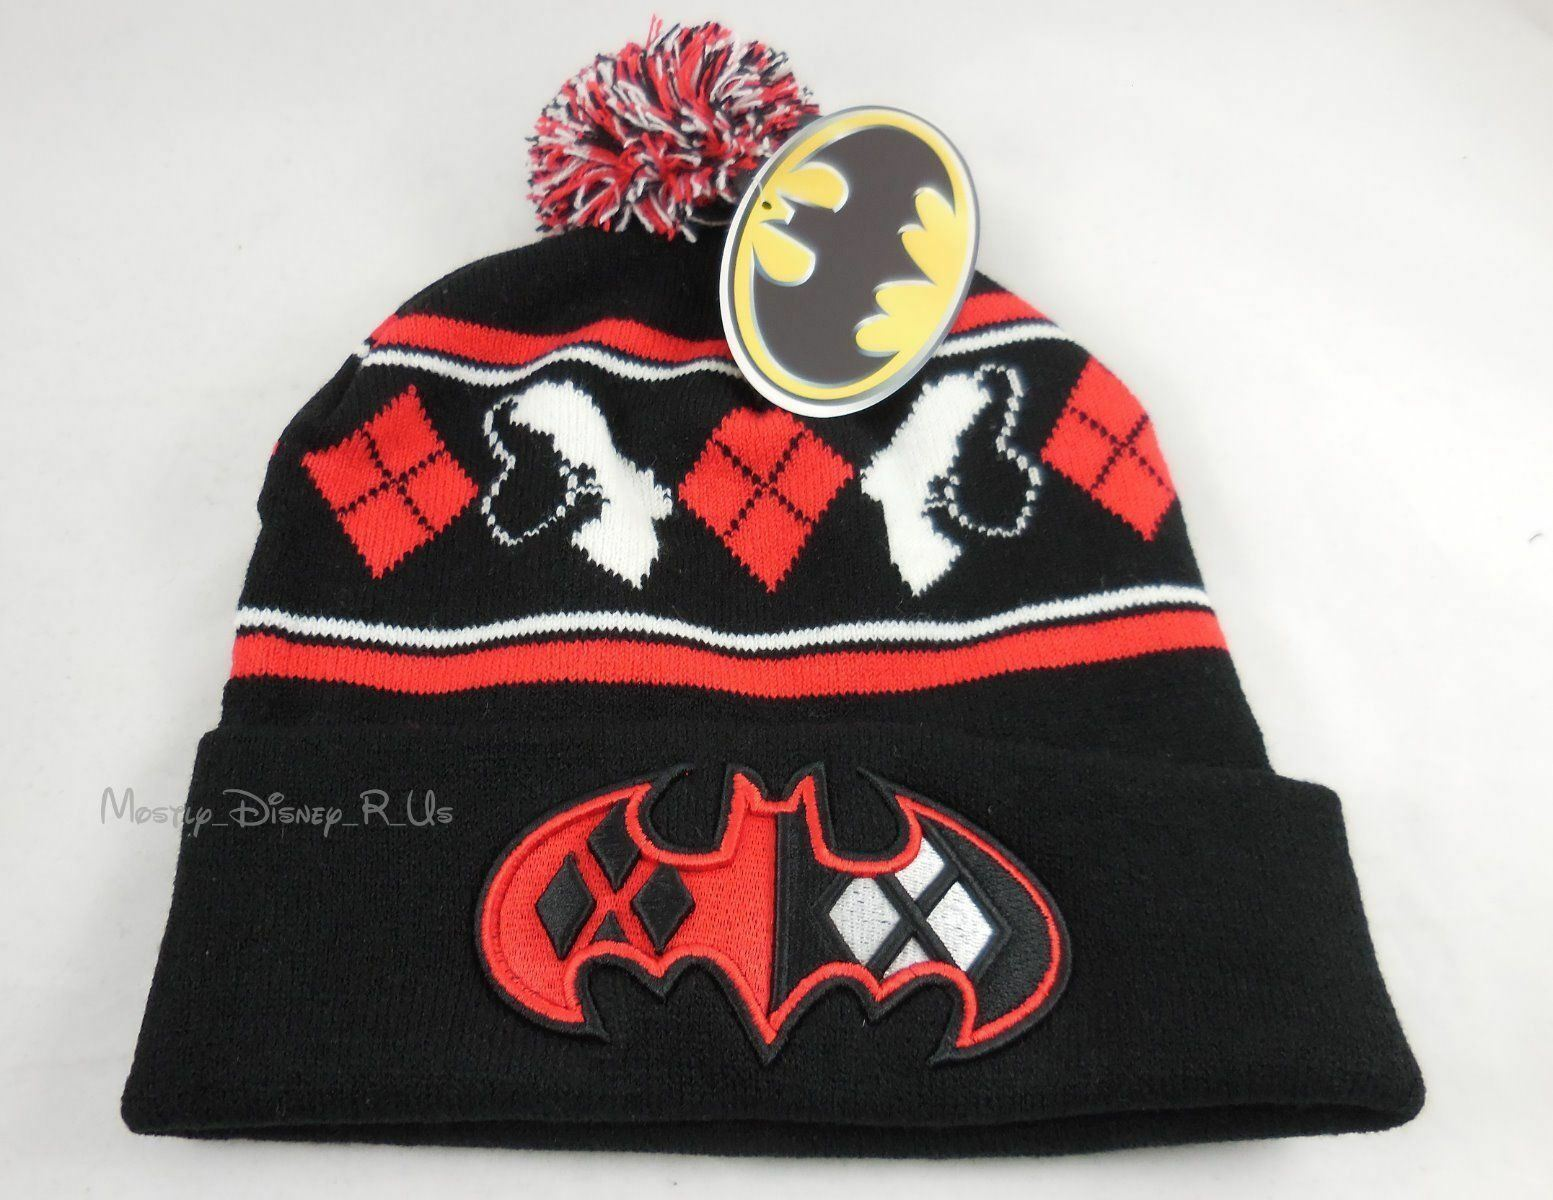 23d2db61021 Details about New DC Comics Batman Harley Quinn Embroidered Knit Fold Over Pom  Beanie Hat